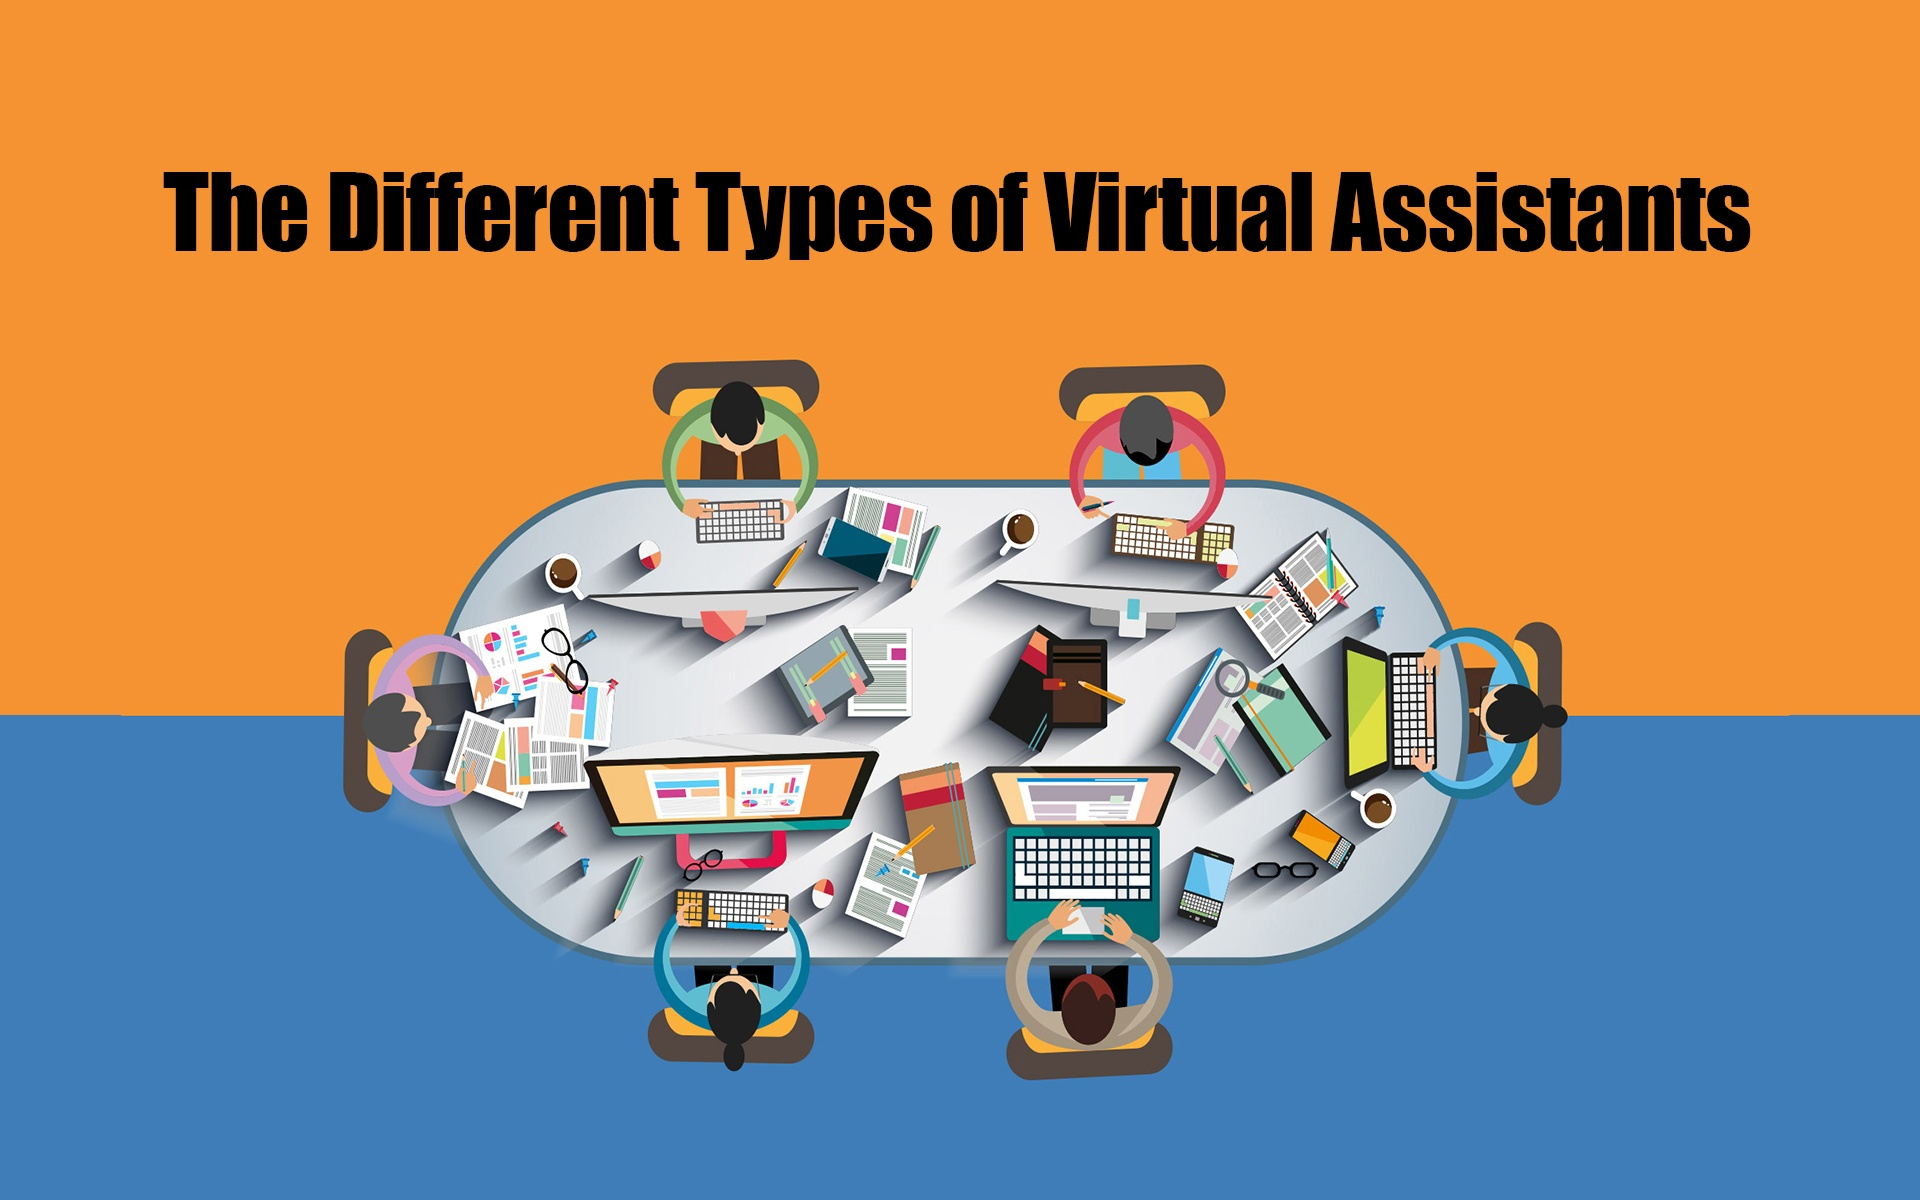 The Different Types of Virtual Assistants